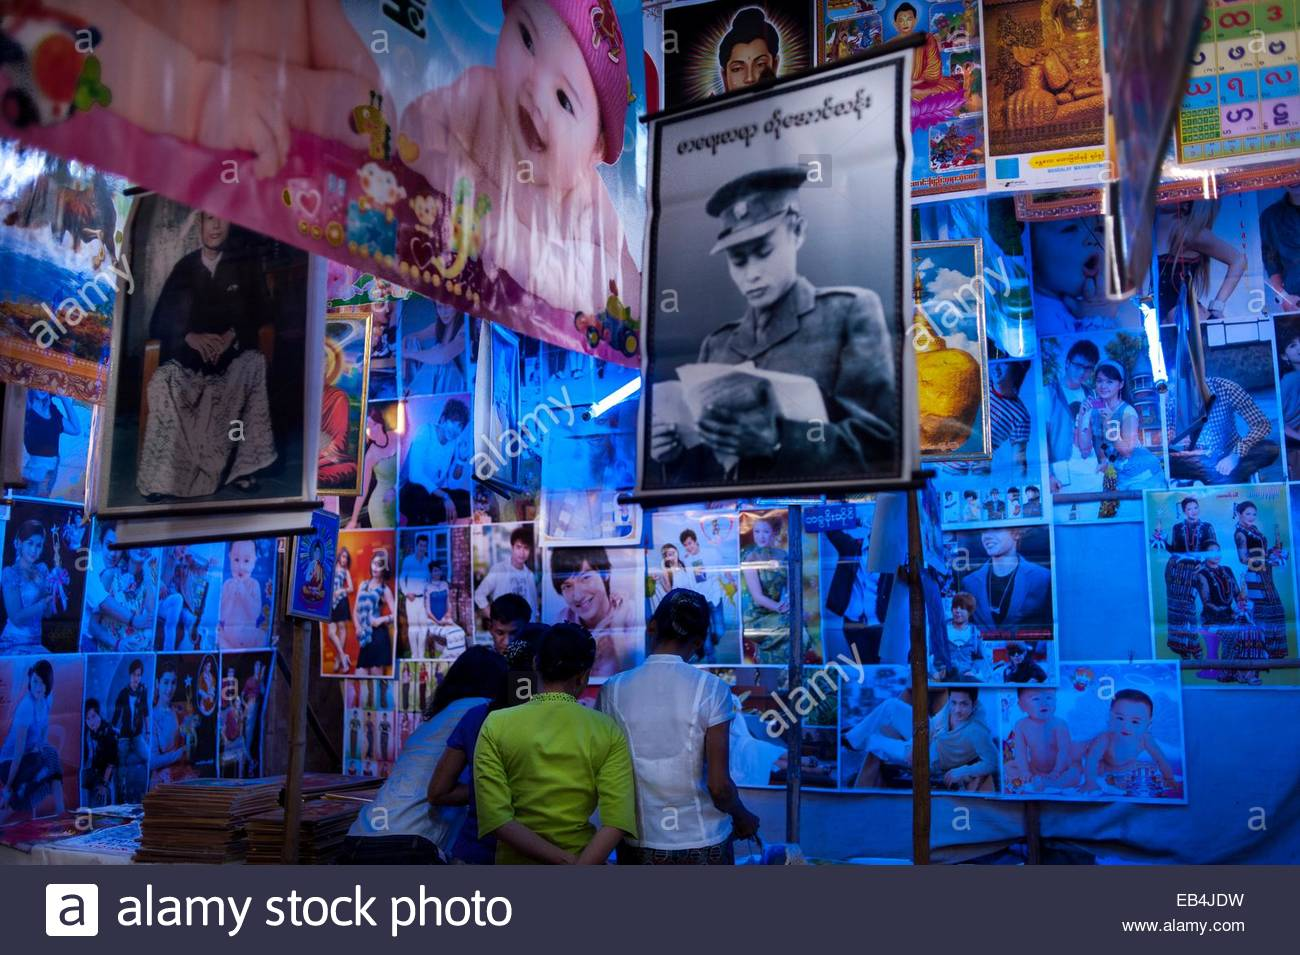 Inside a shop that sells posters and other graphics for decoration. - Stock Image